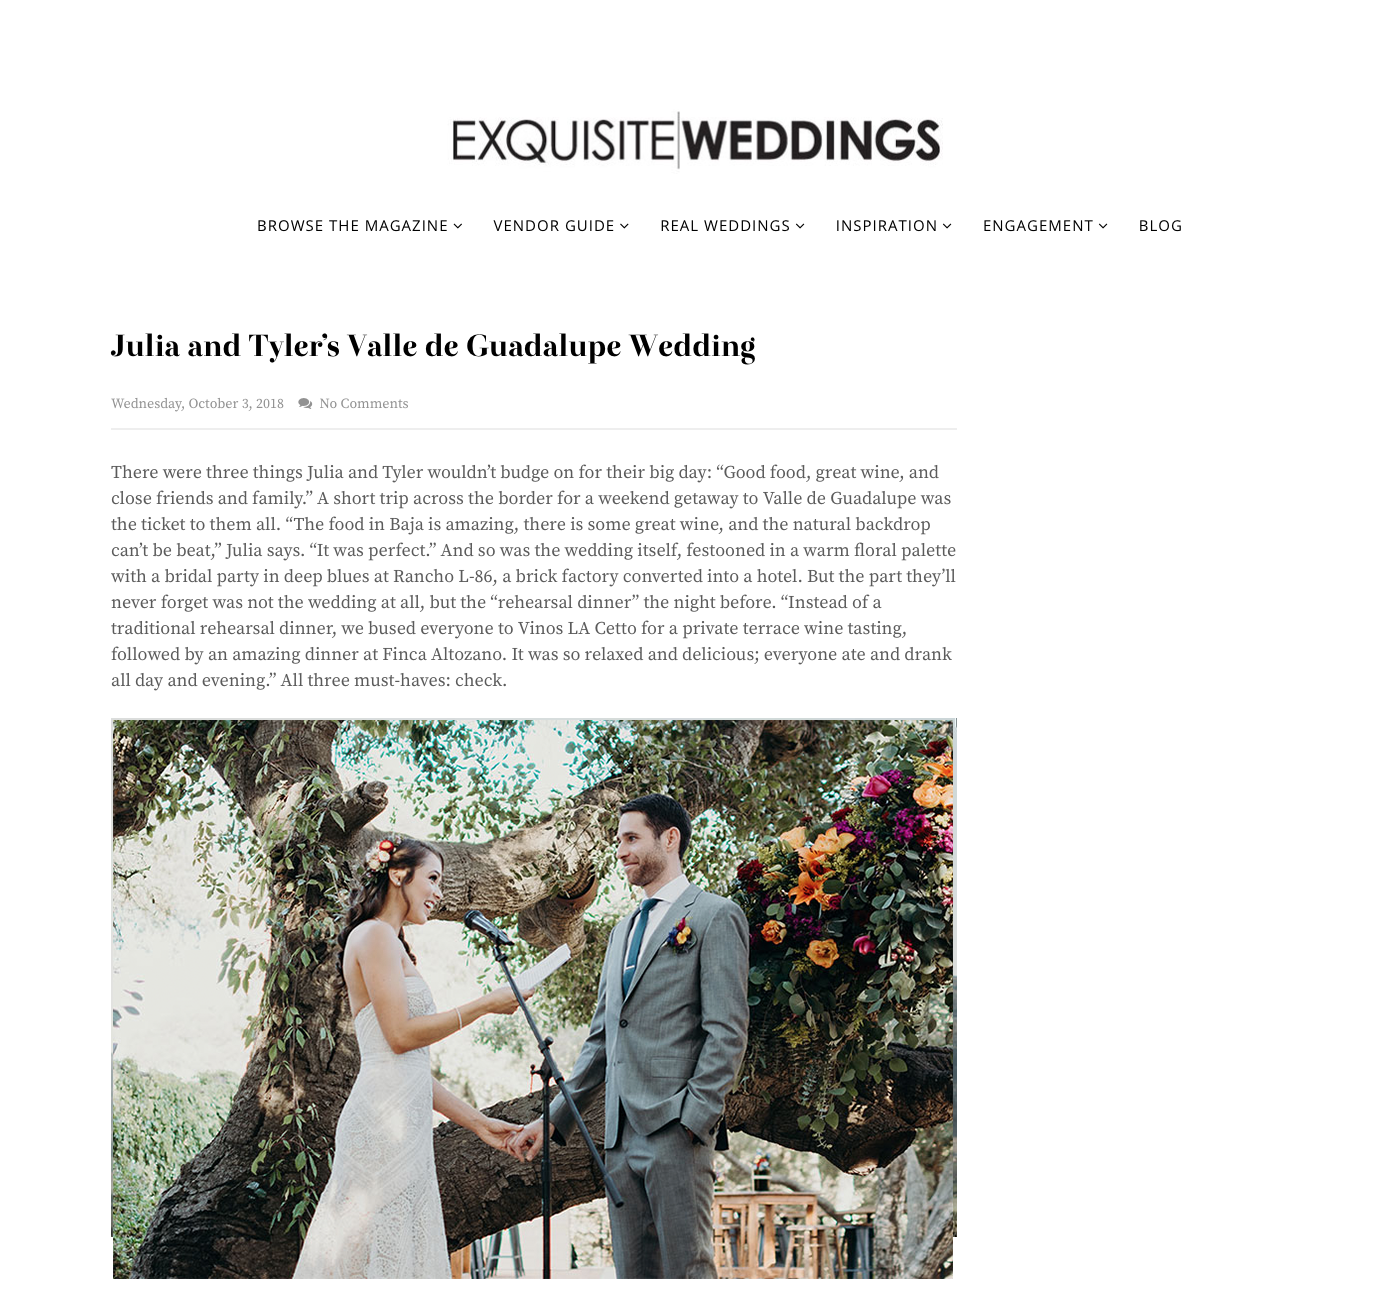 Exquisite Weddings by San Diego Magazine-losebano 2.png